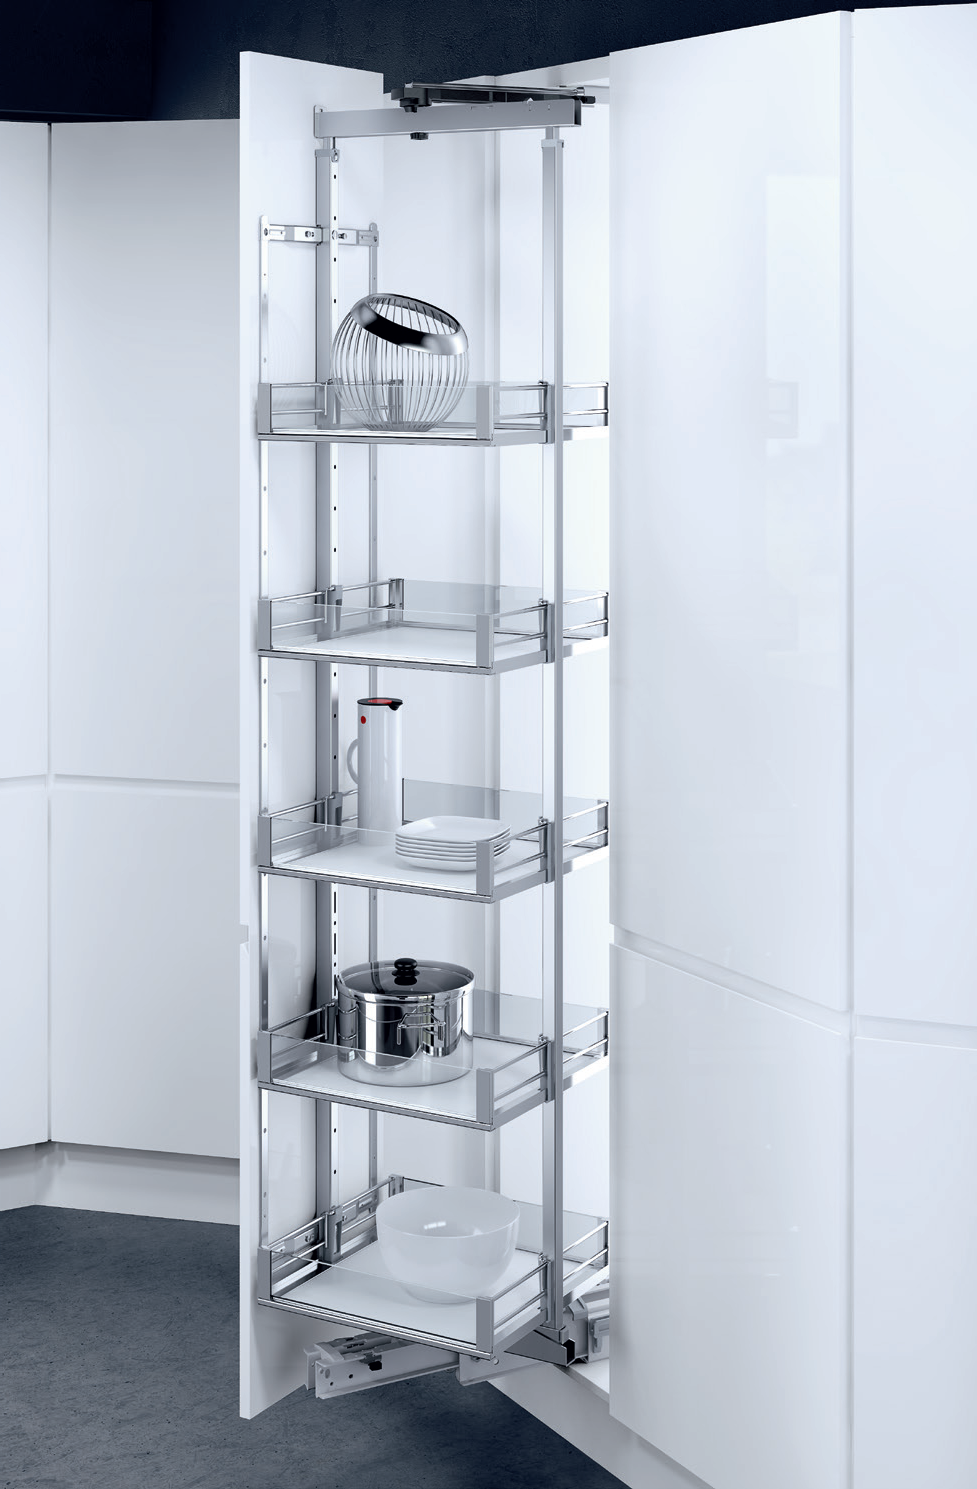 pantry pull out hsa rotary  available basket variants  diy slide out shelves kitchen cabinets